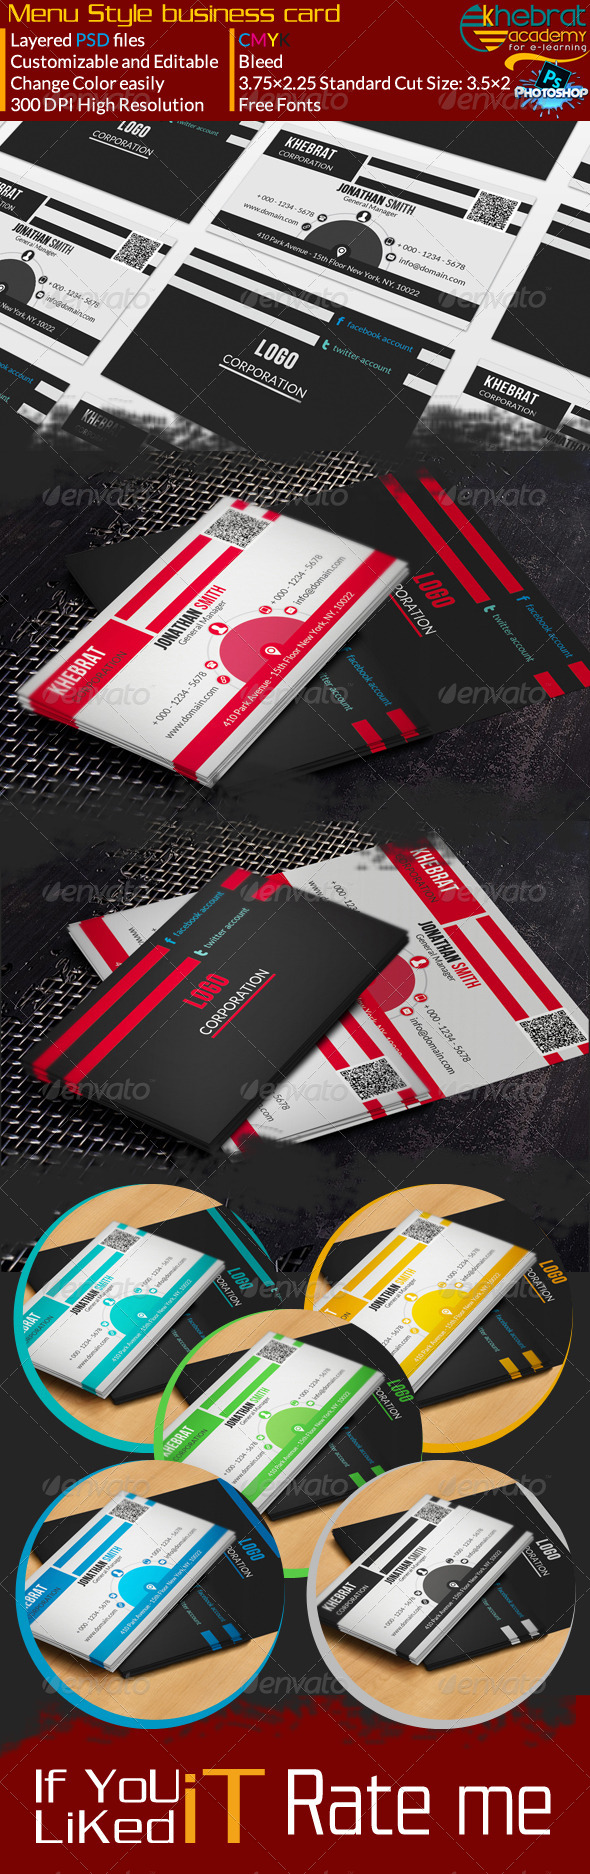 Menu Style Corporate Business Card V02 - Corporate Business Cards